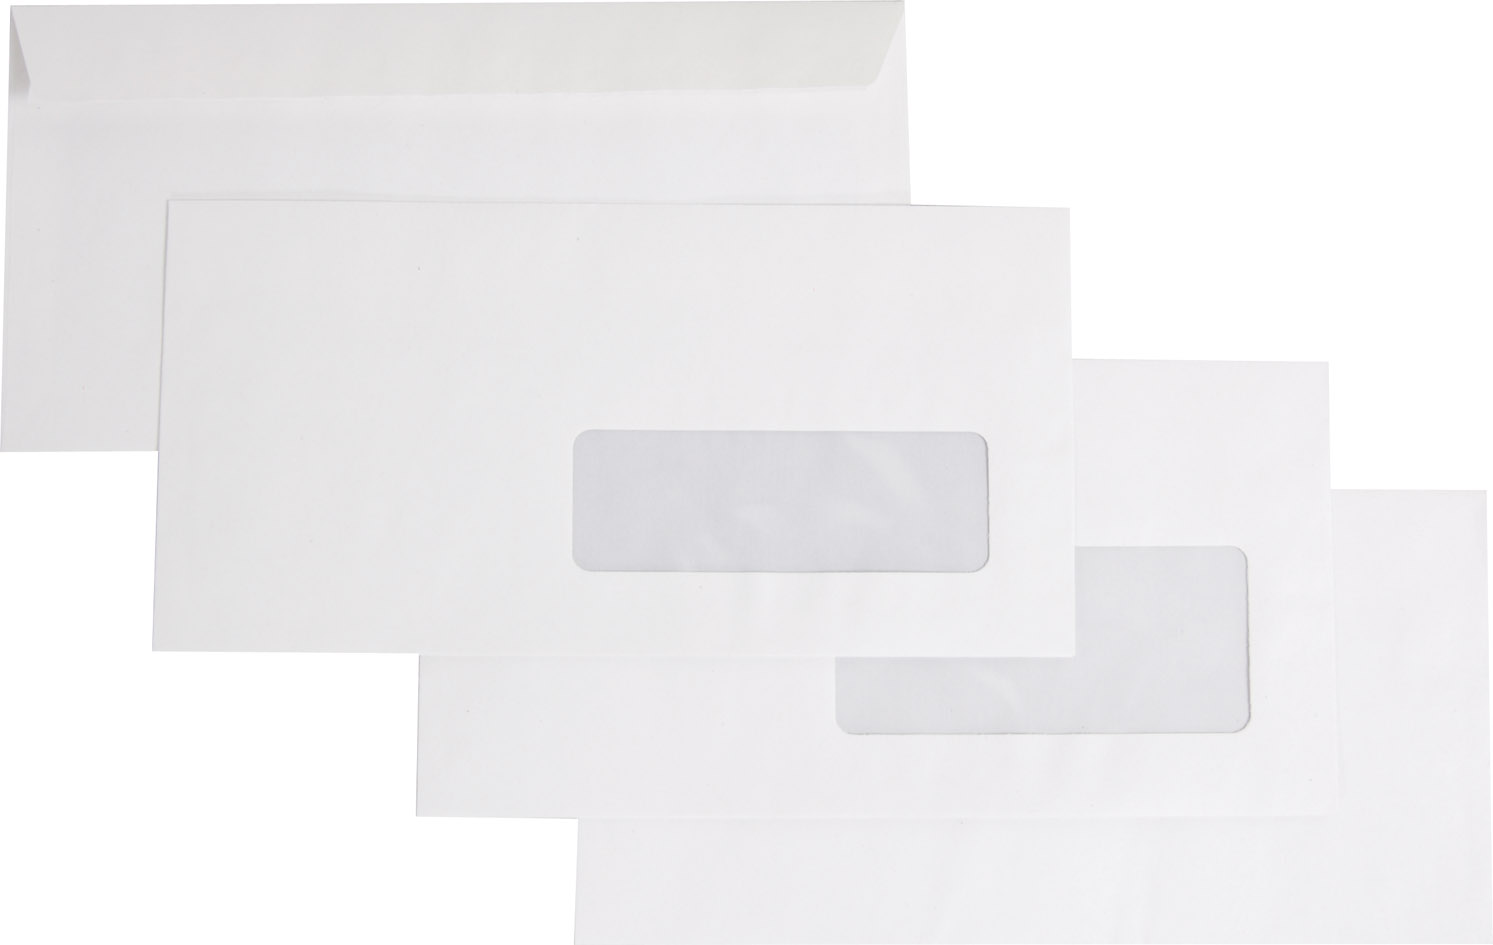 Enveloppes recycl es blanches dl fen tre 35 100 forever for Fenetre 80 100